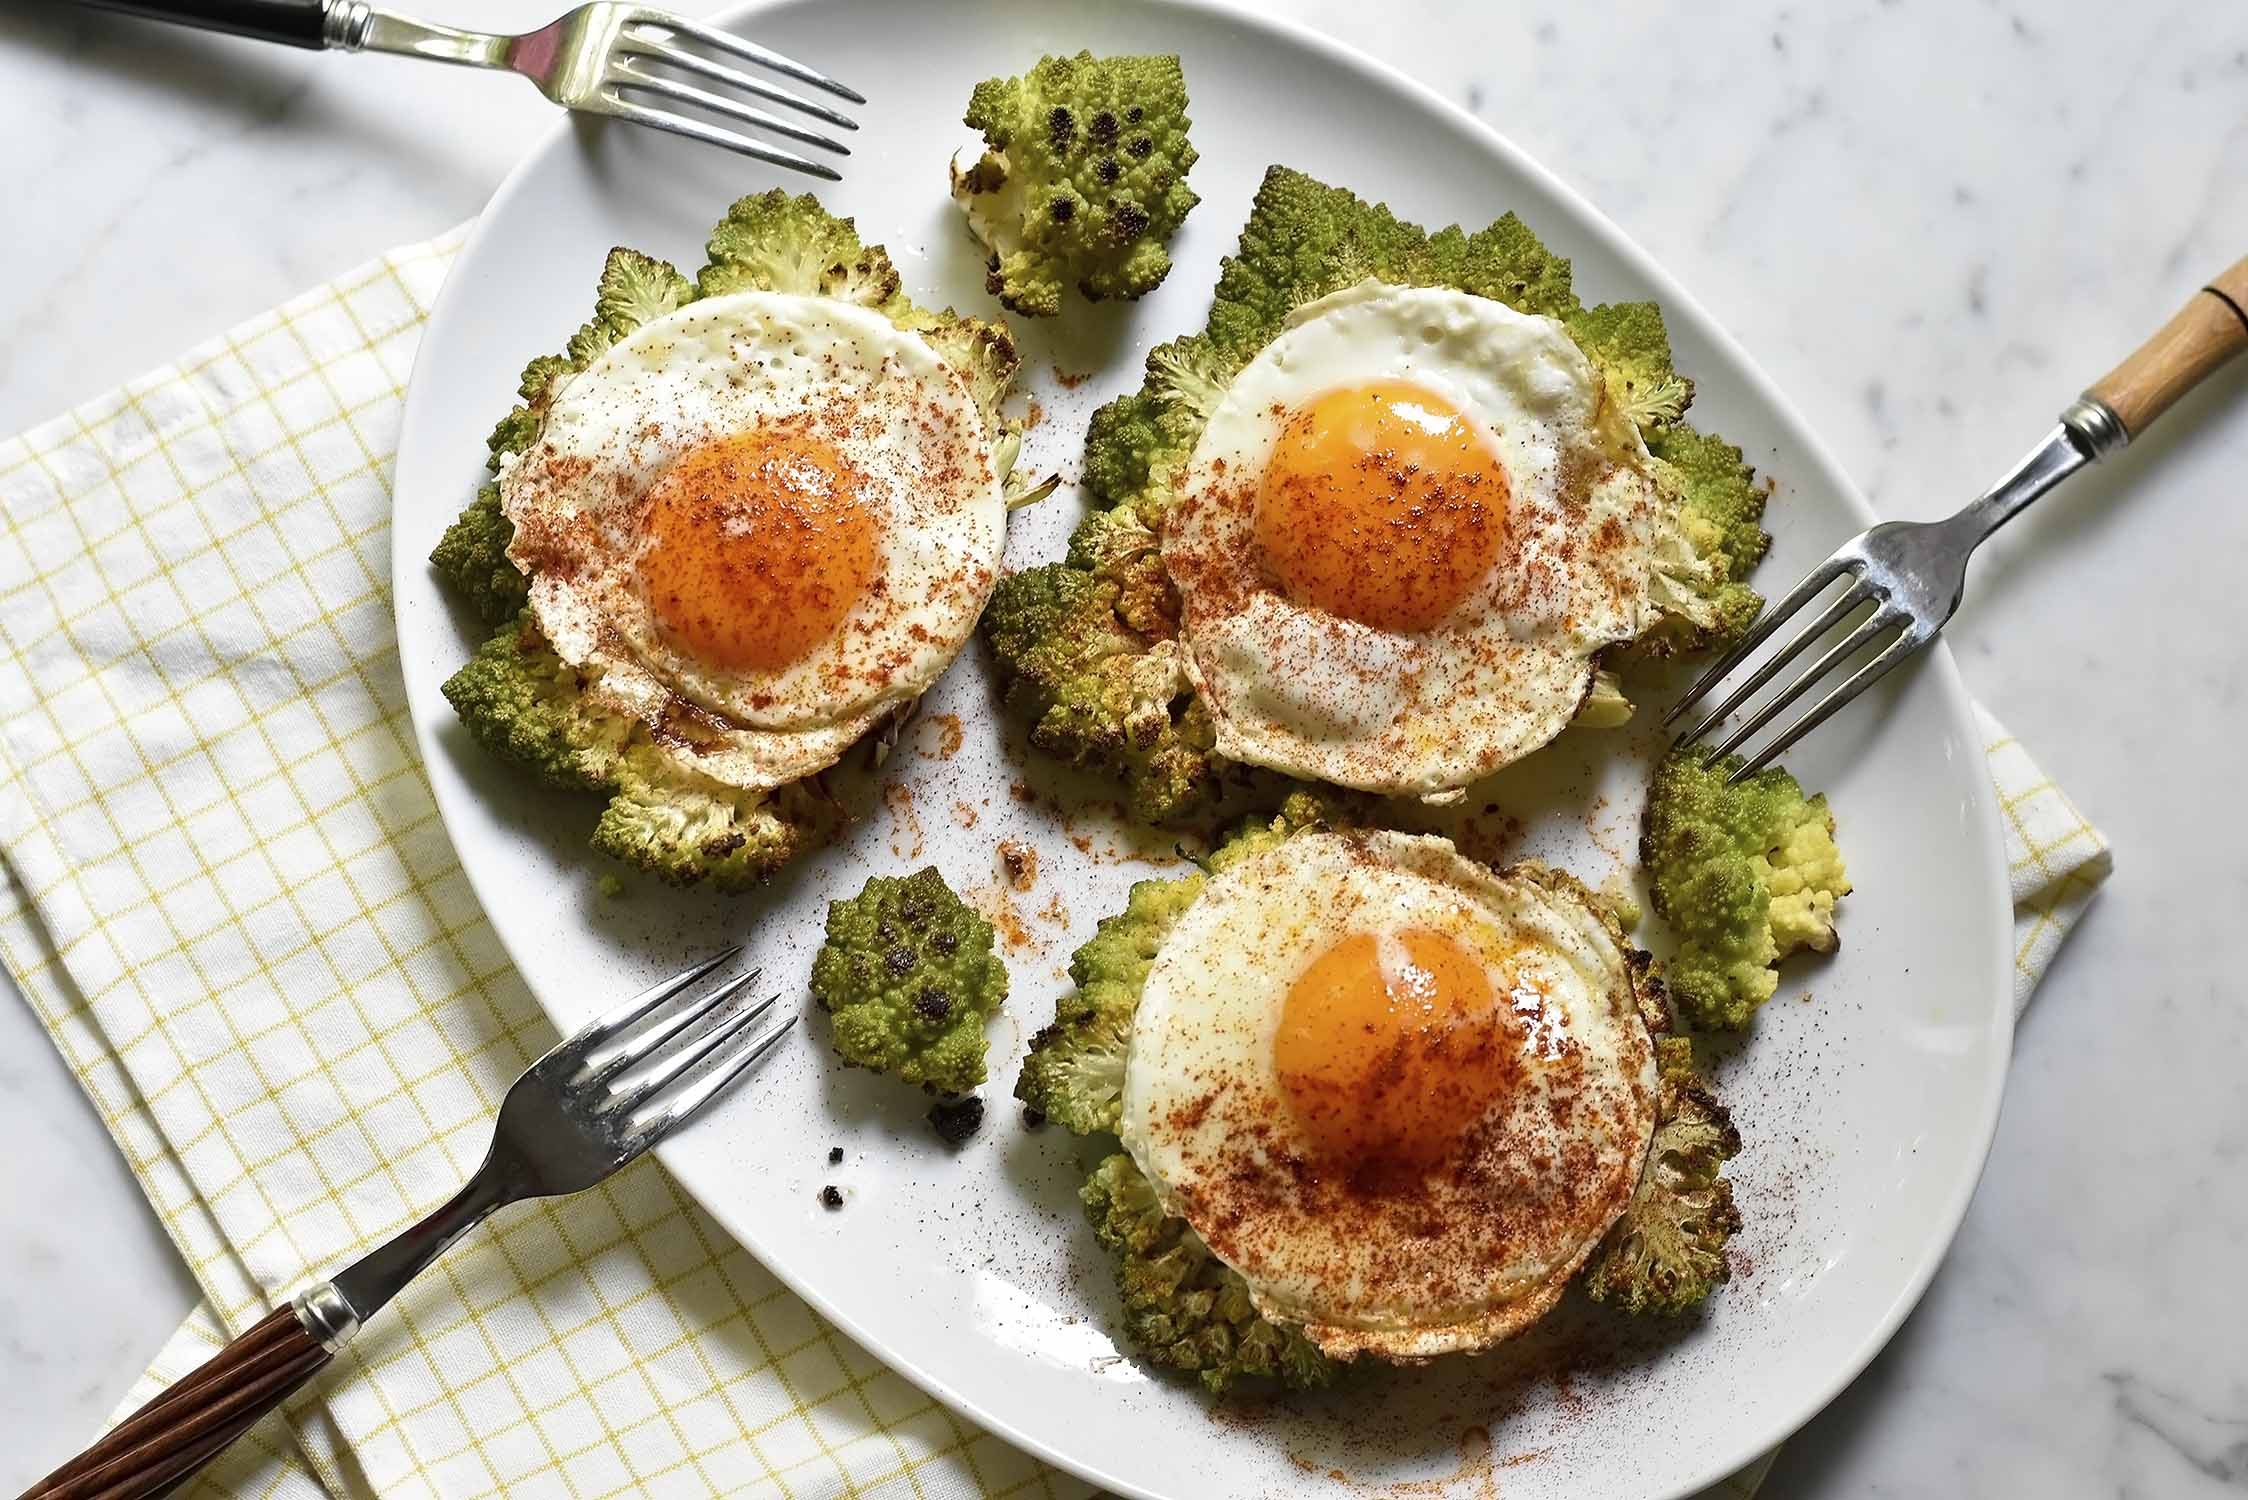 My romanesco slice topped with a fried egg and smoked paprika